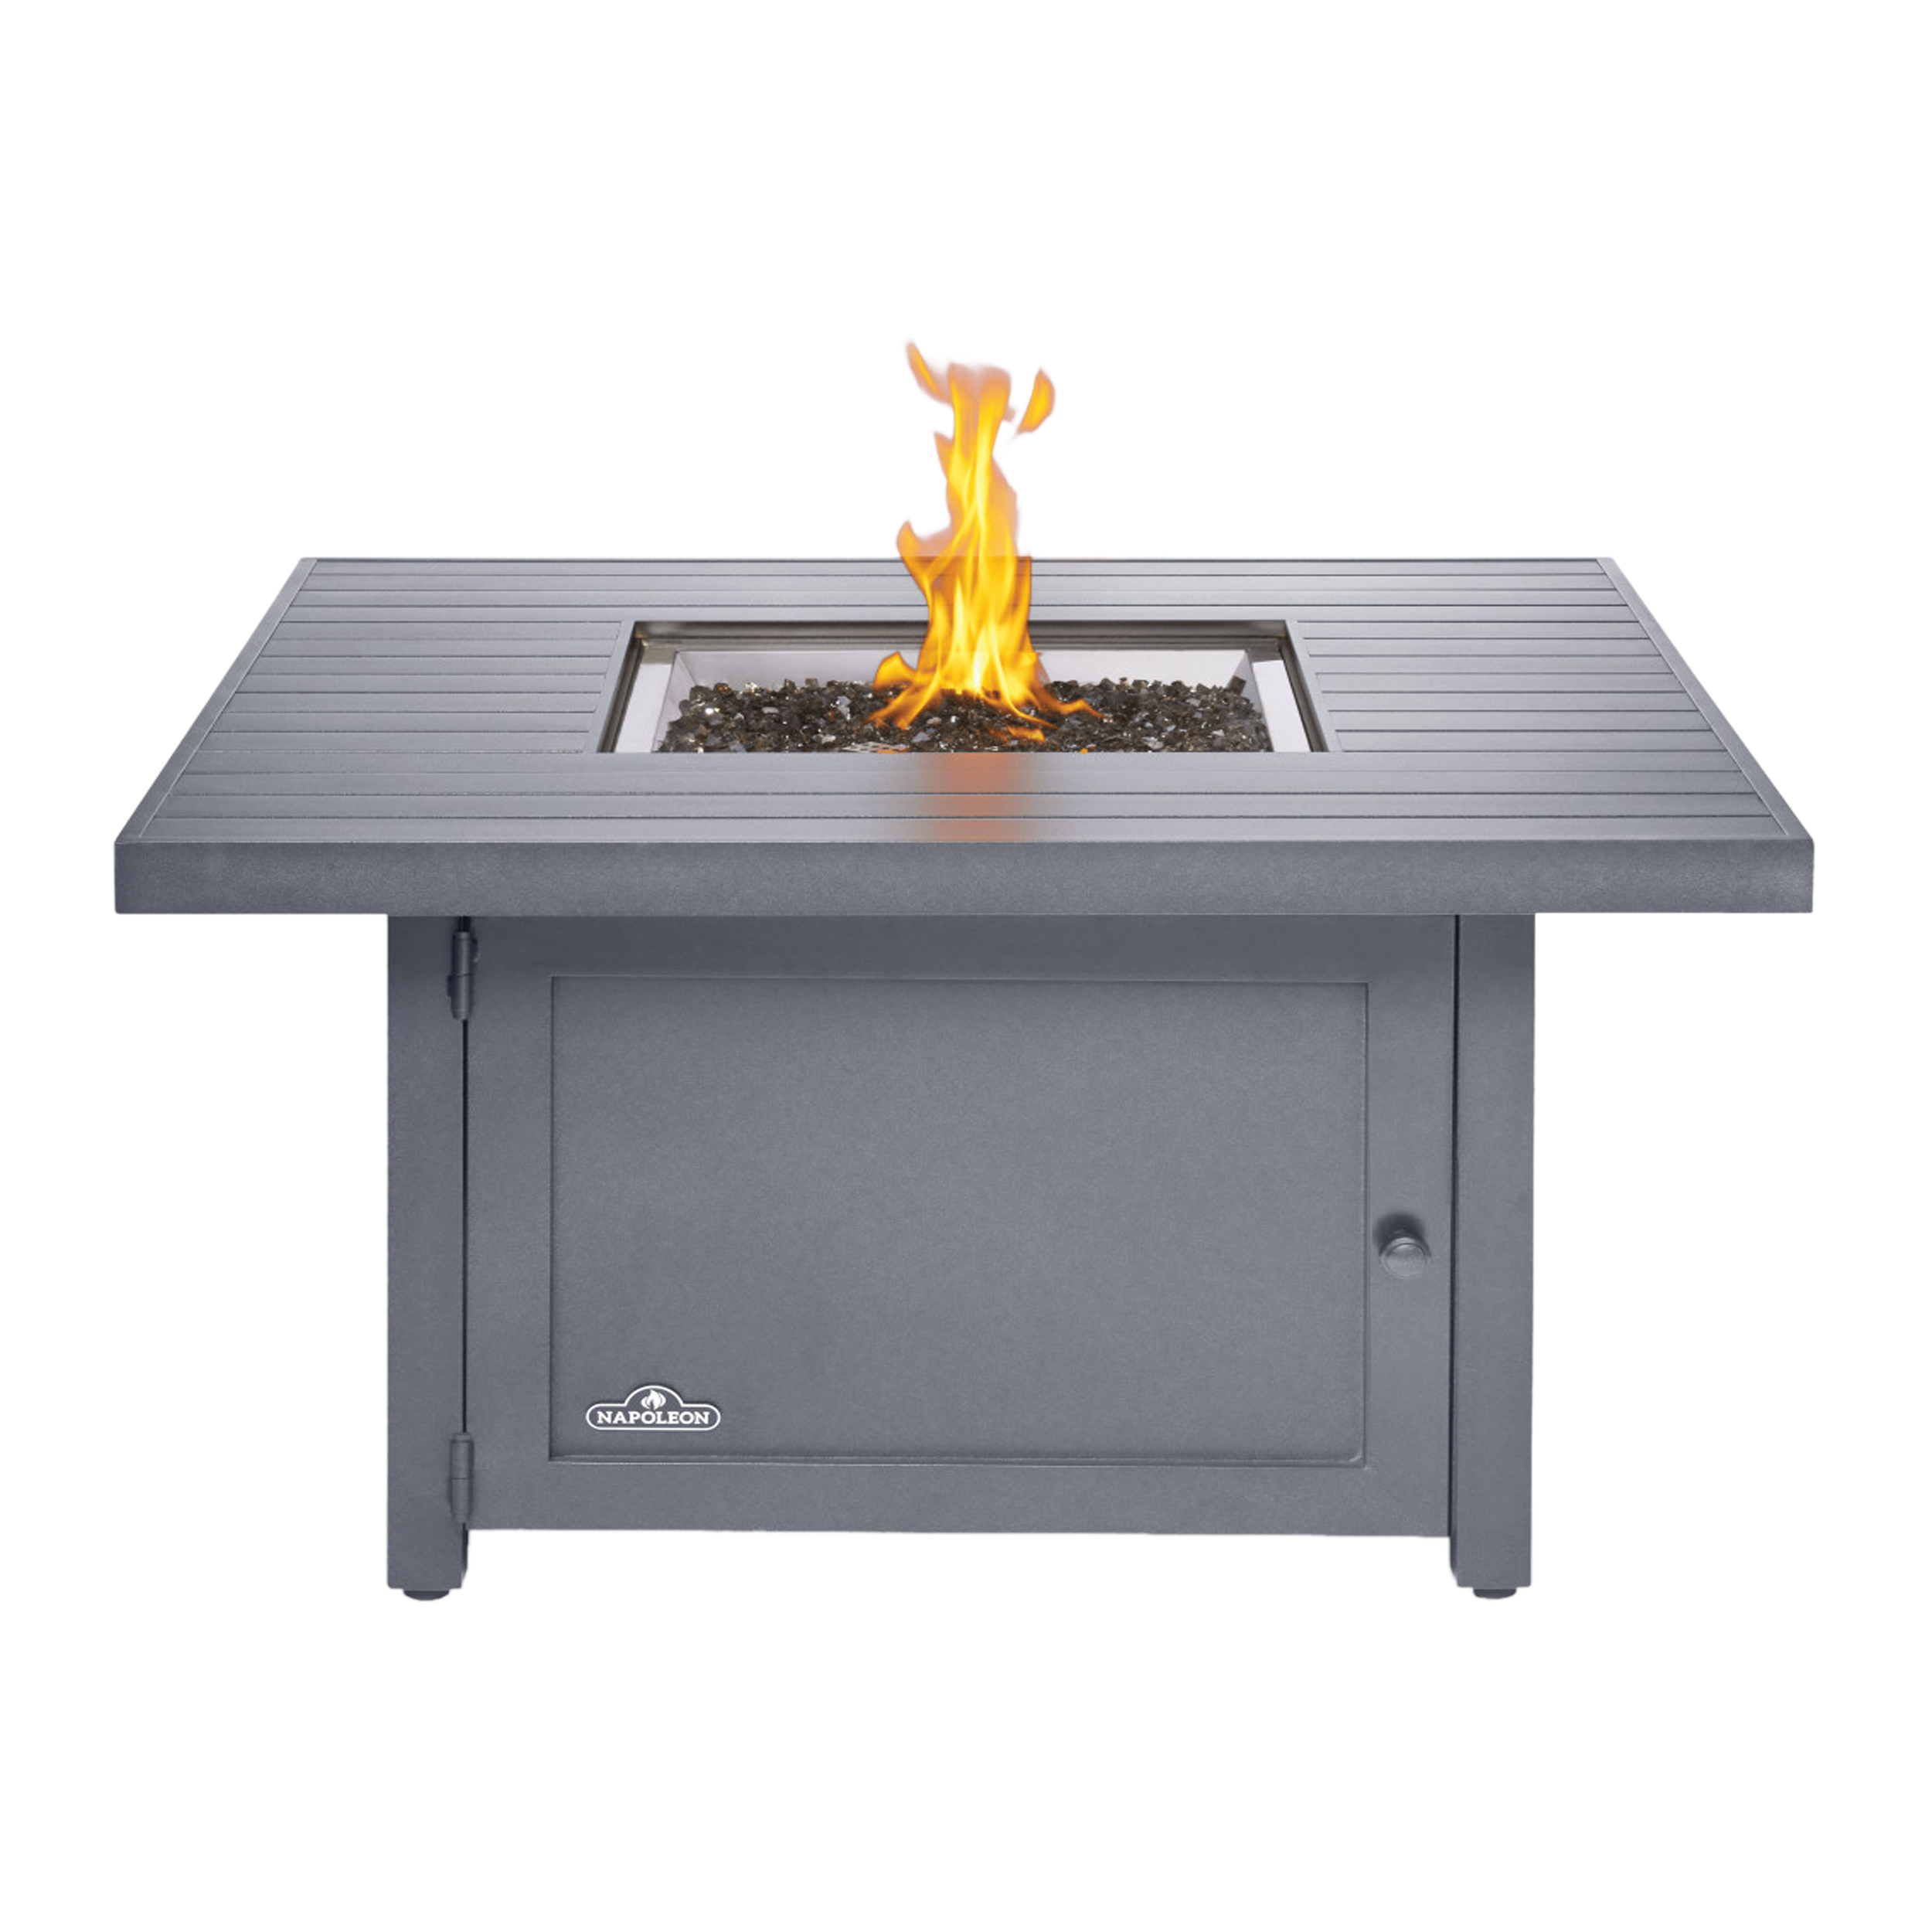 "Napoleon Patioflame Propane Fire Pit  - Topaz CRYSTALINE ember bed makes it safe on most outdoor surfaces - ""Easy Start"" ignition produces heat up to 40,000 BTUs - Lightweight rust-resistant aluminum construction"